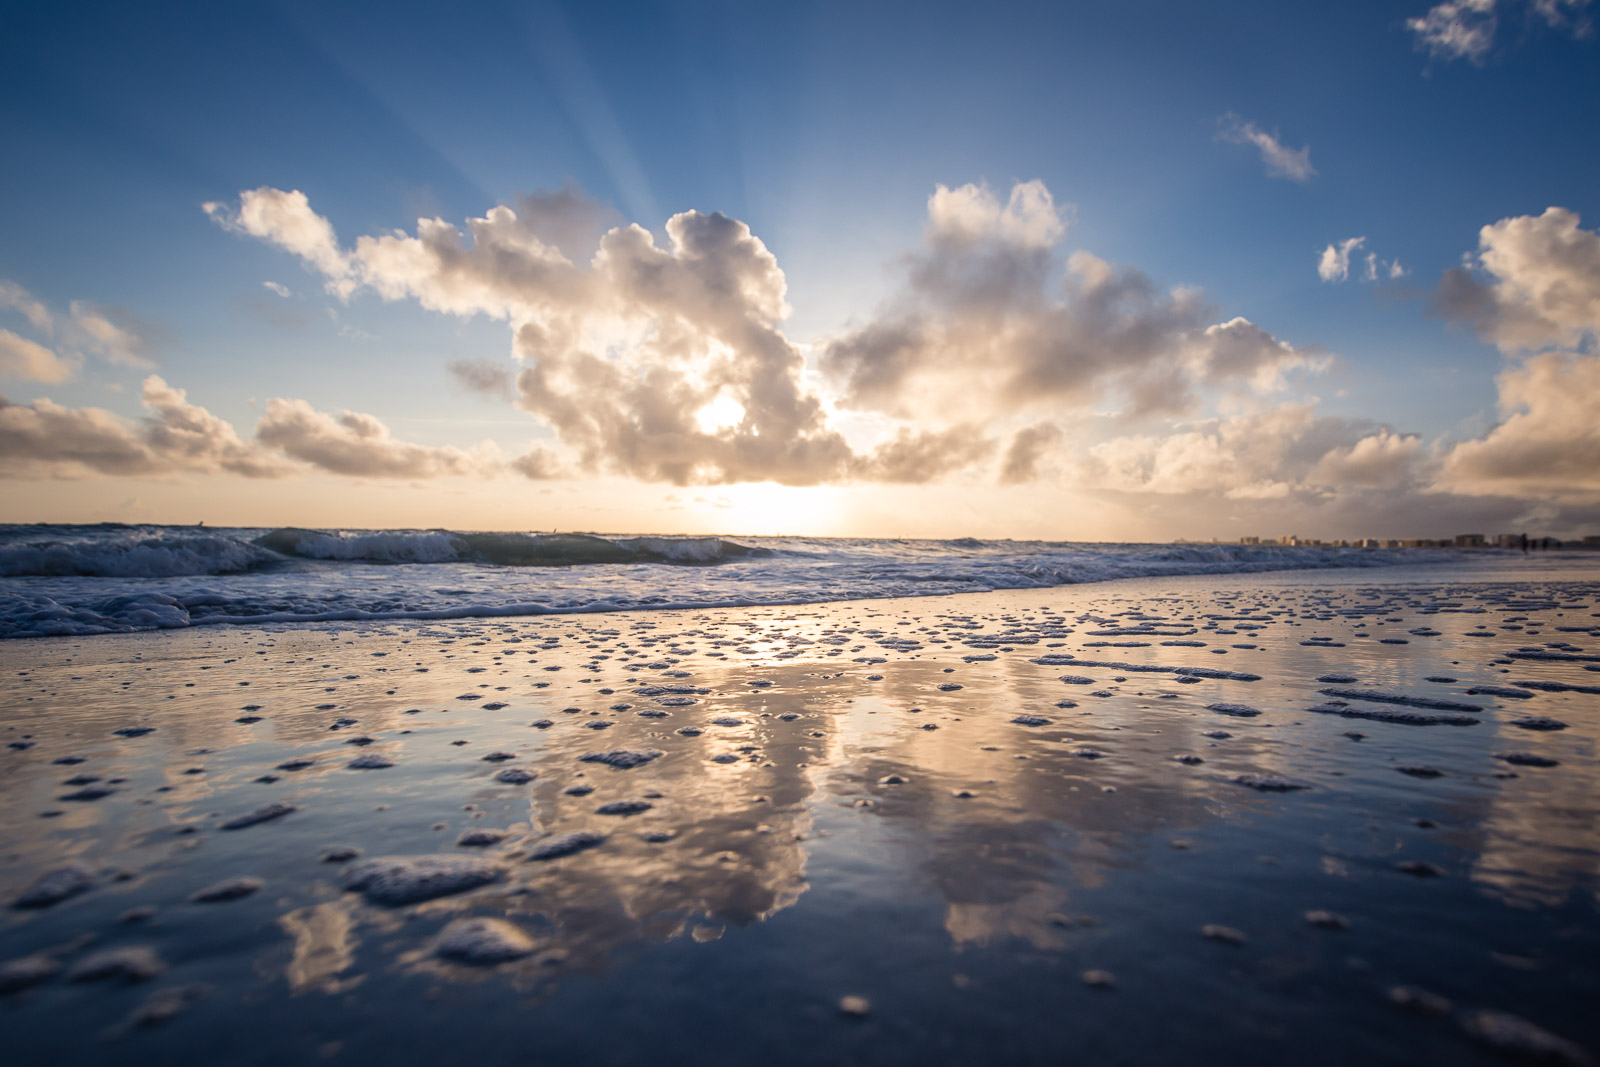 Florida beach sunset with cloud reflection